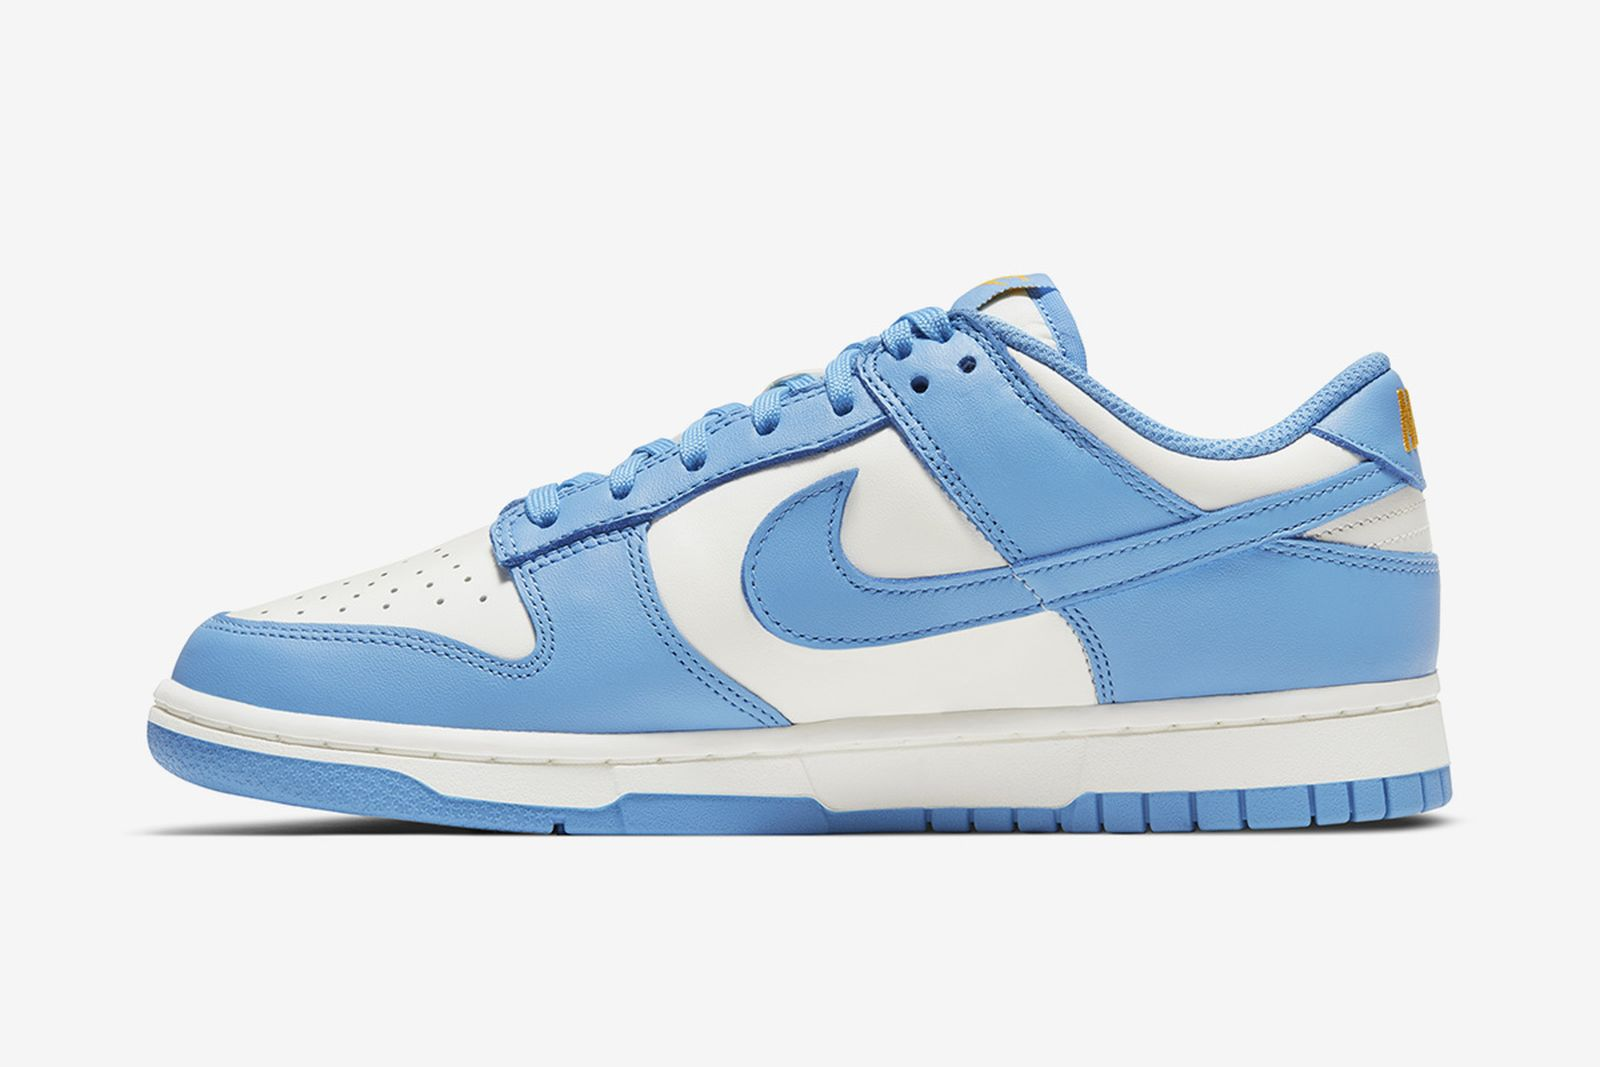 nike-dunk-spring-2021-release-date-price-1-01